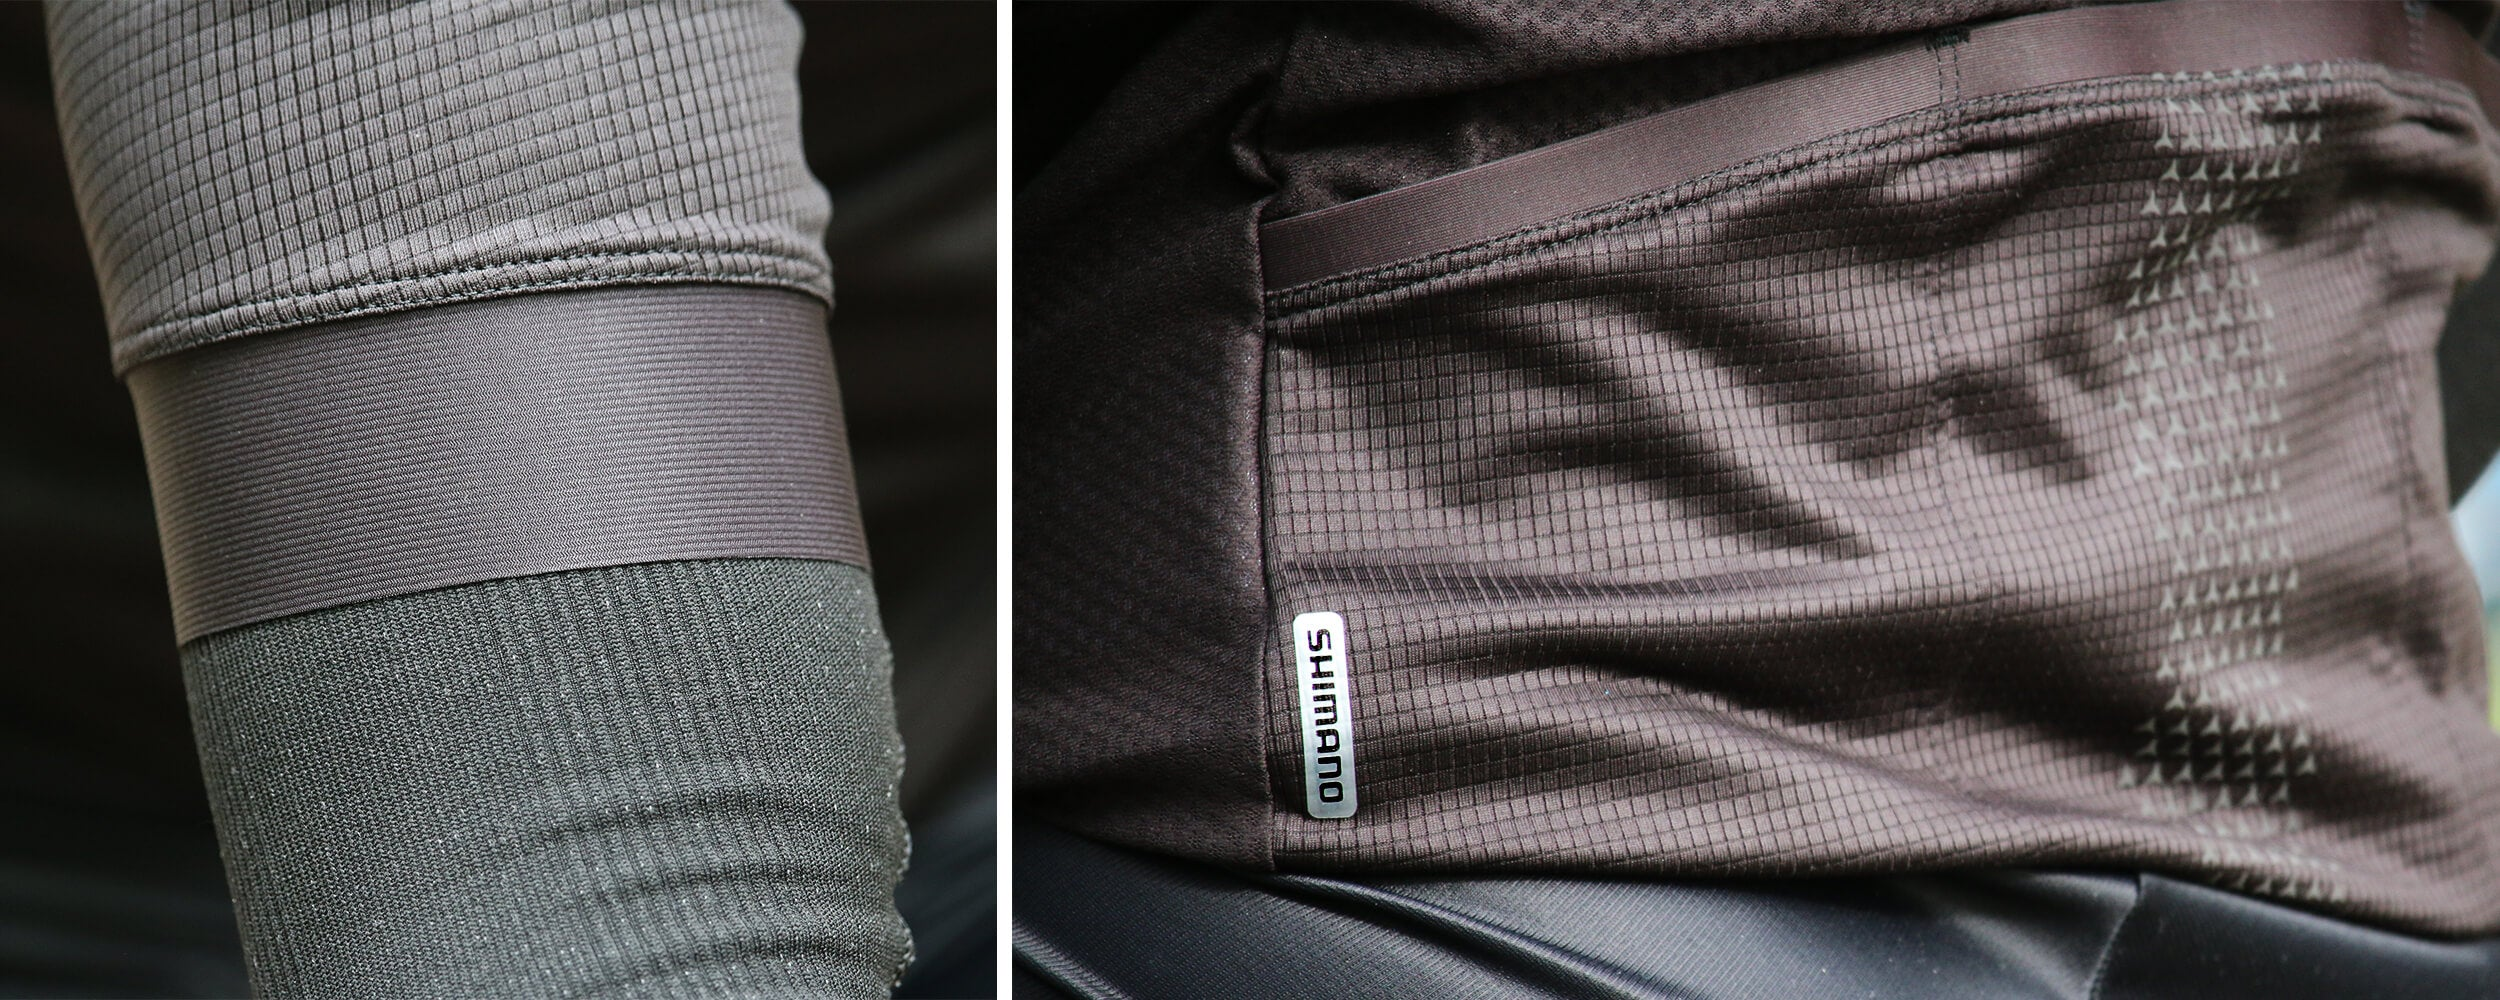 Shimano S-Phyre Cycling Jersey Detail - Contender Bicycles